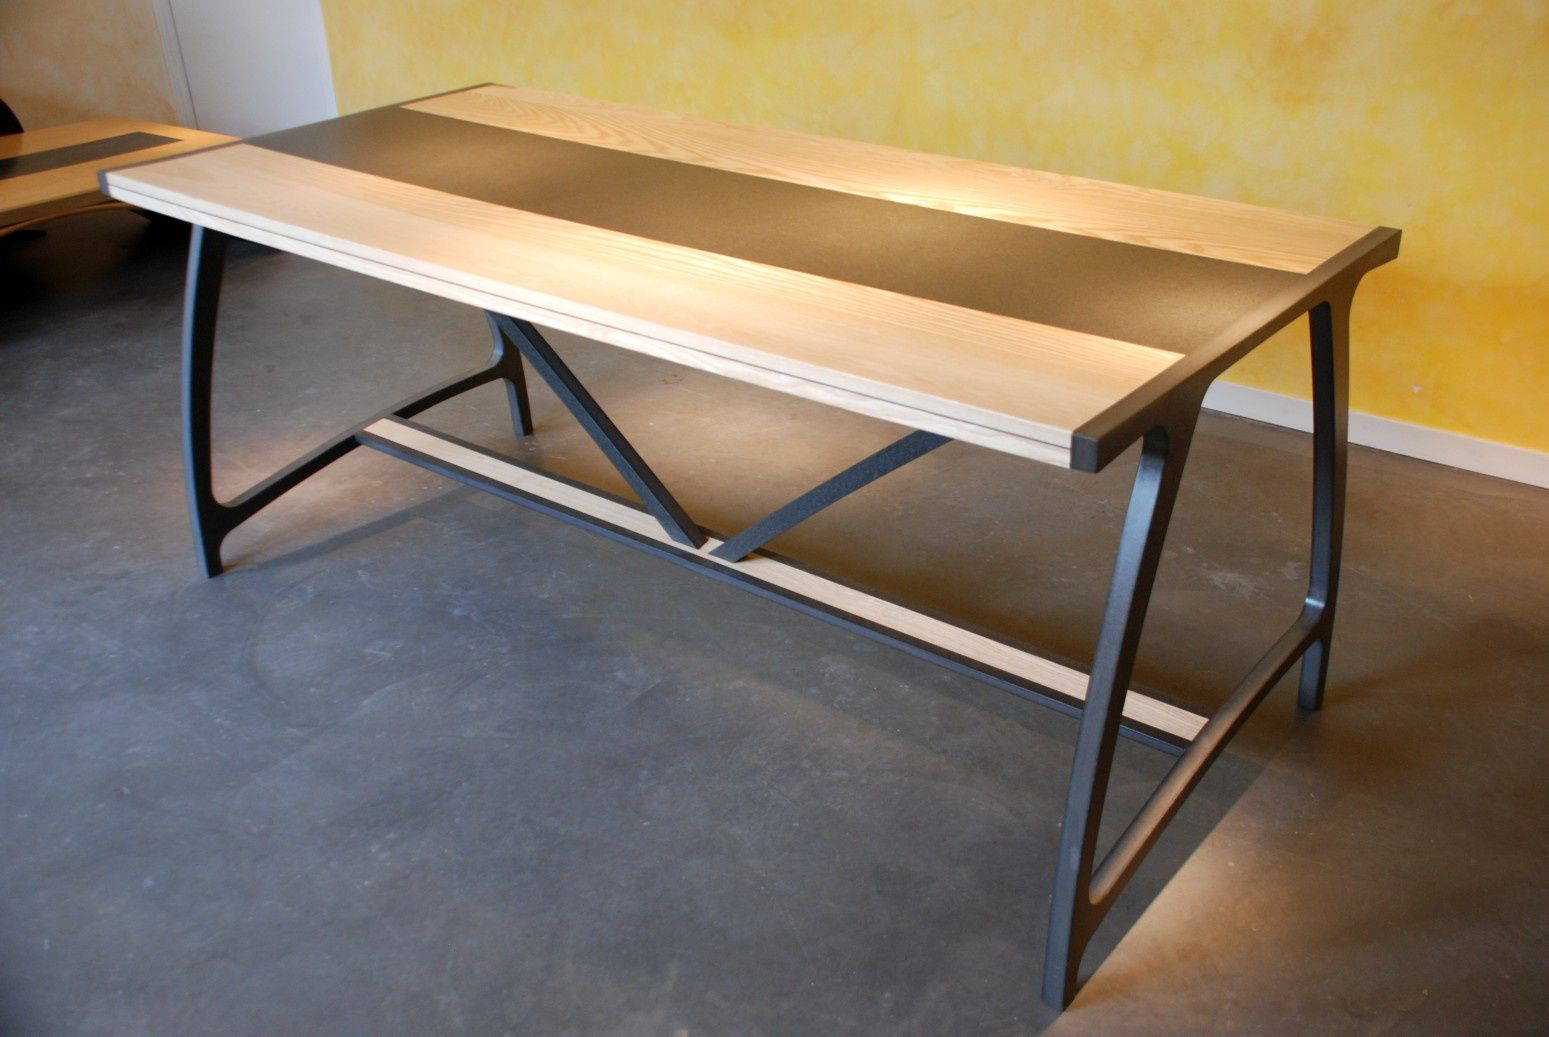 Table manger design bulle atelier pourquoi pas for Meuble table a manger